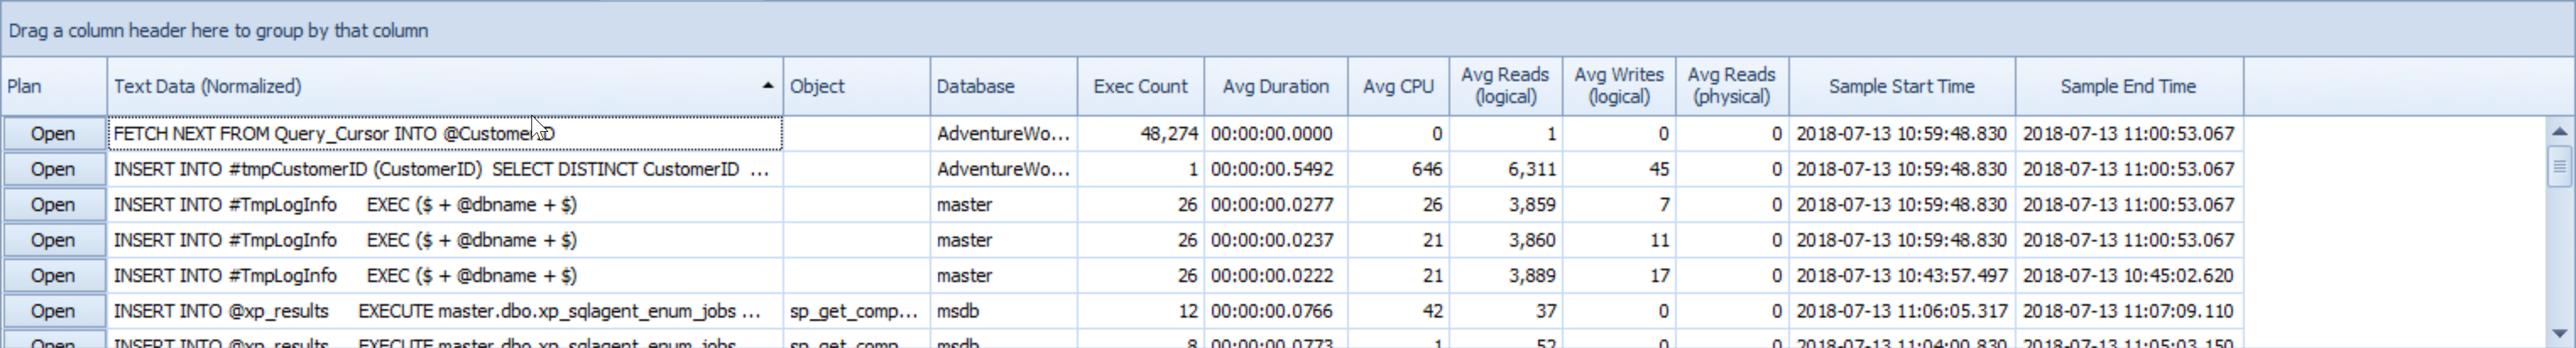 SentryOne Top SQL Sort Ascending